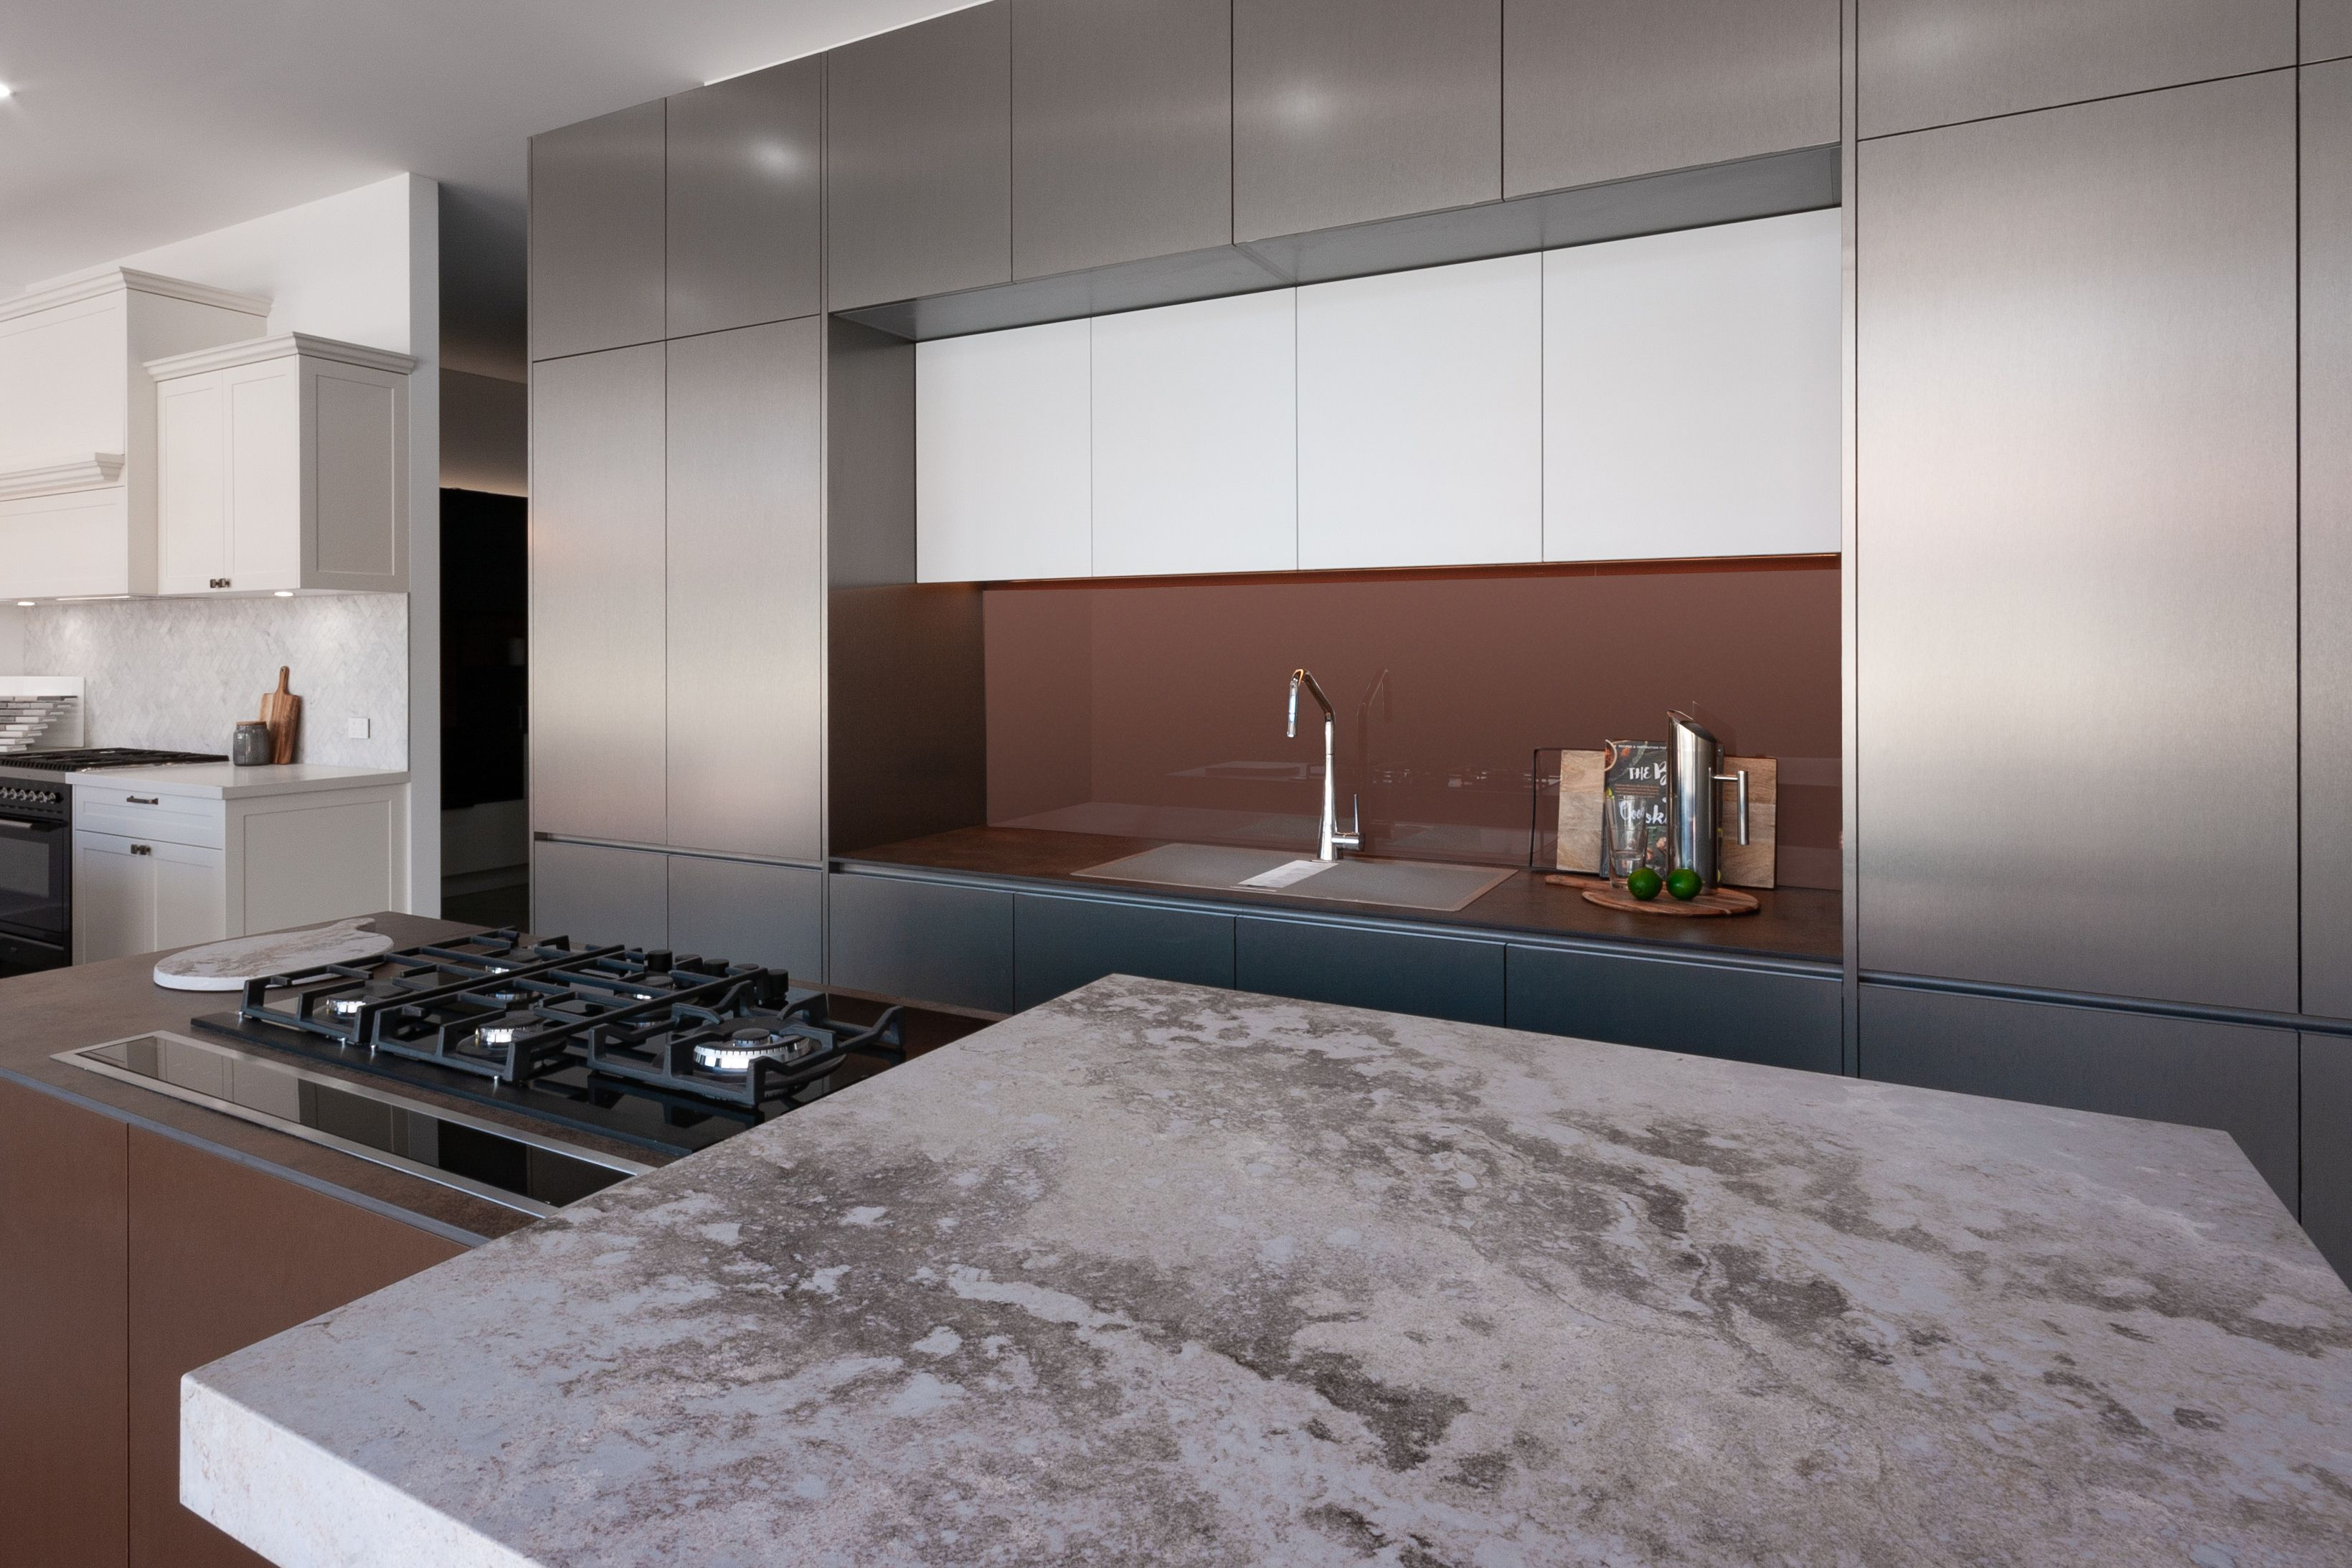 Premier Kitchens Showcase The Bold Yet Sophisticated Industrial Aesthetic Of Caesarstone Excava Beautifully C Kitchen Design Caesarstone Kitchen Caesarstone